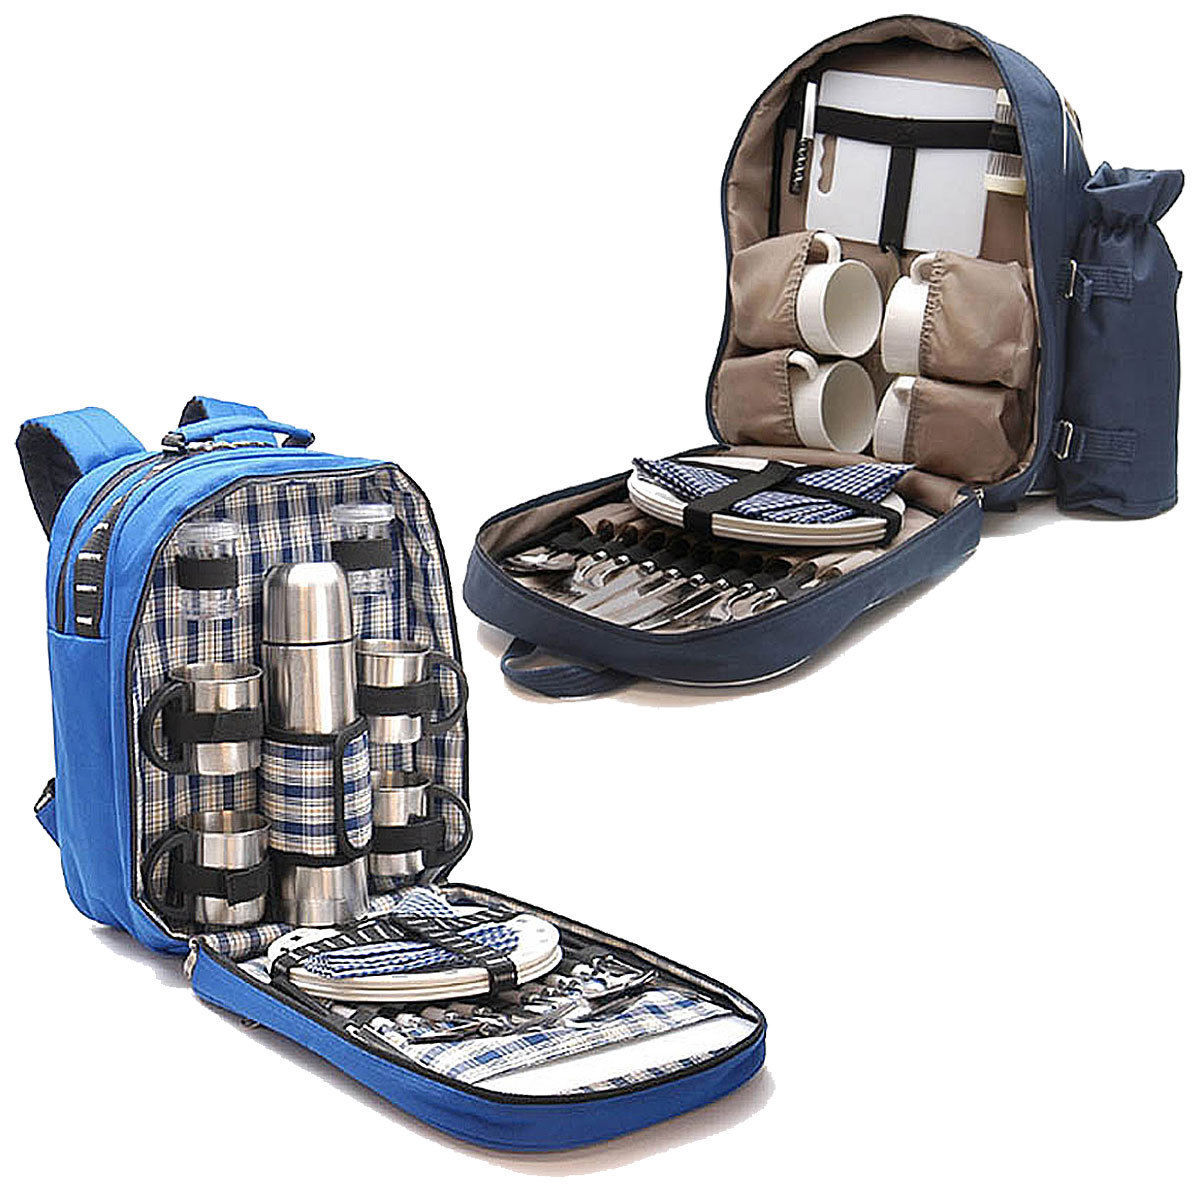 picknick rucksack f r 4 personen campinggeschirr outdoor geschirr picknick set ebay. Black Bedroom Furniture Sets. Home Design Ideas